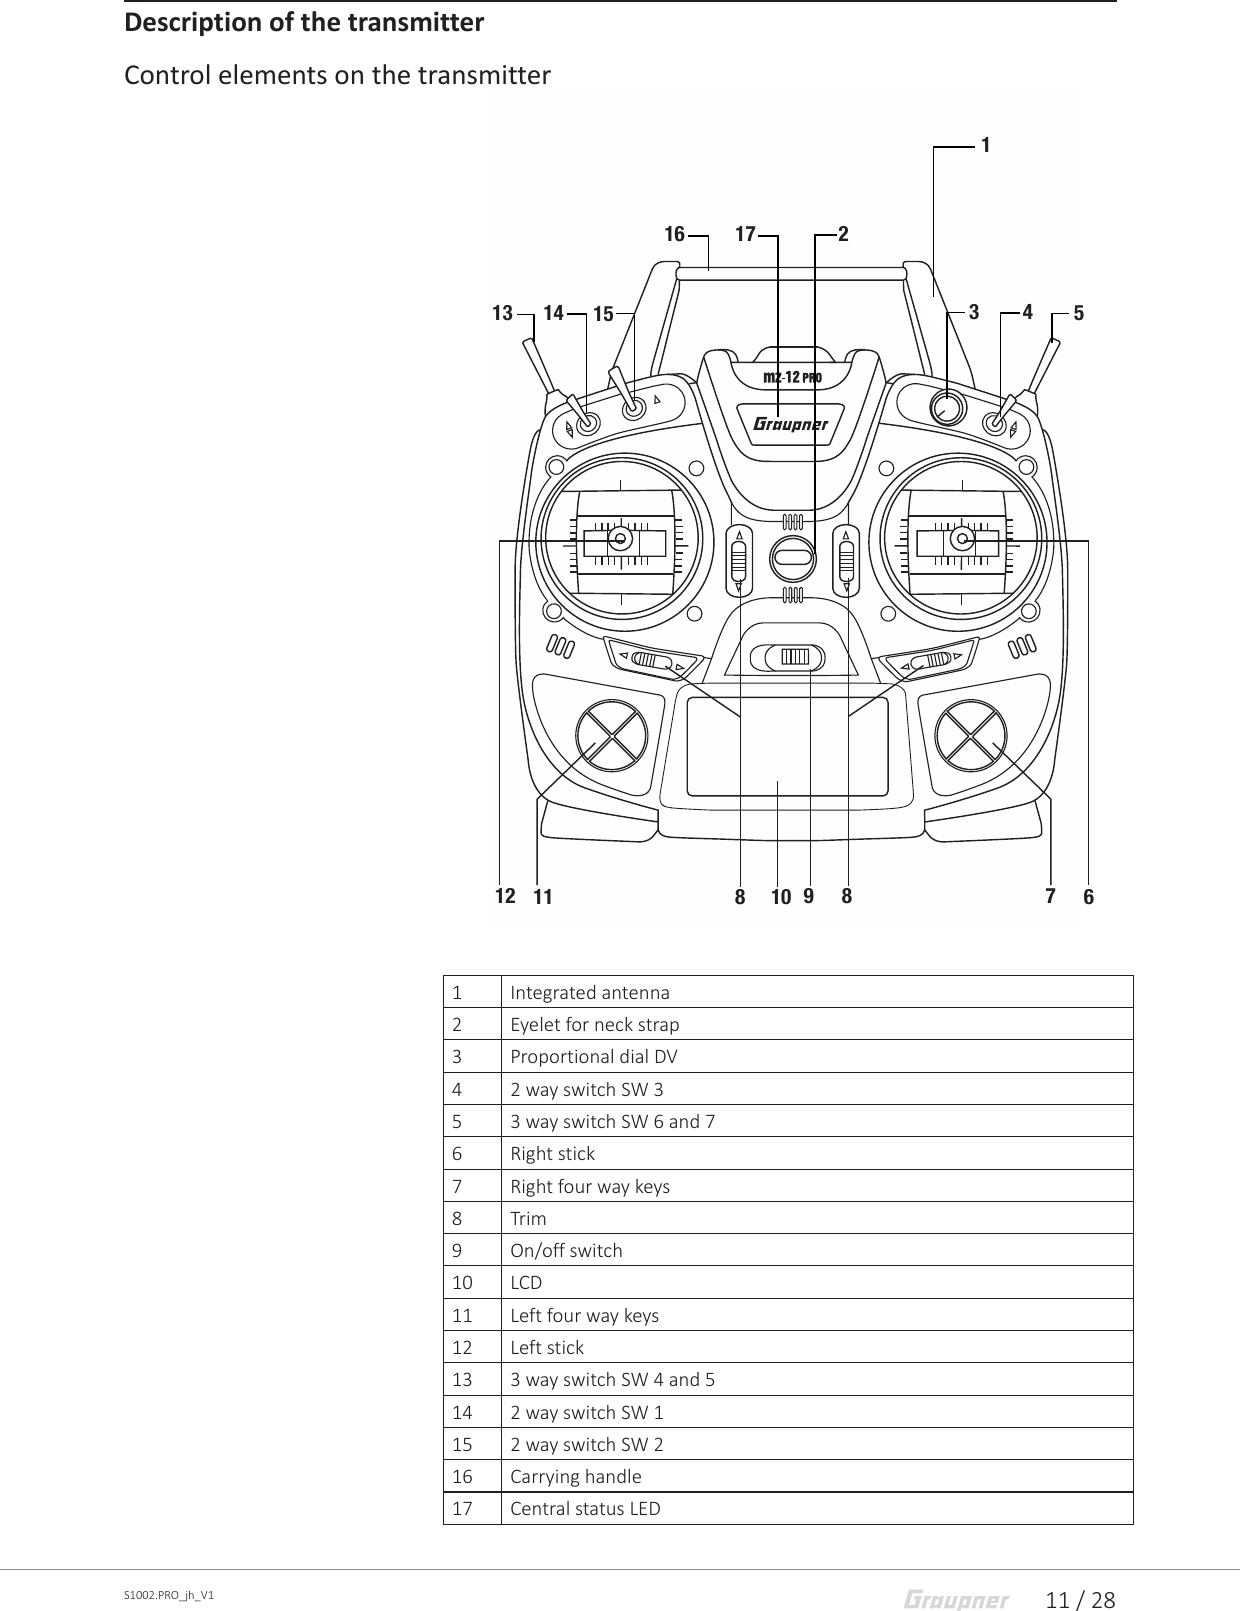 Graupner 16007812 24ghz Transmitter User Manual S1002 Pro Mz 12pro Four Way Switch Design 11 28s1002pro Jh V1description Of The Transmittercontrol Elements On Transmitter1 Integrated Antenna2 Eyelet For